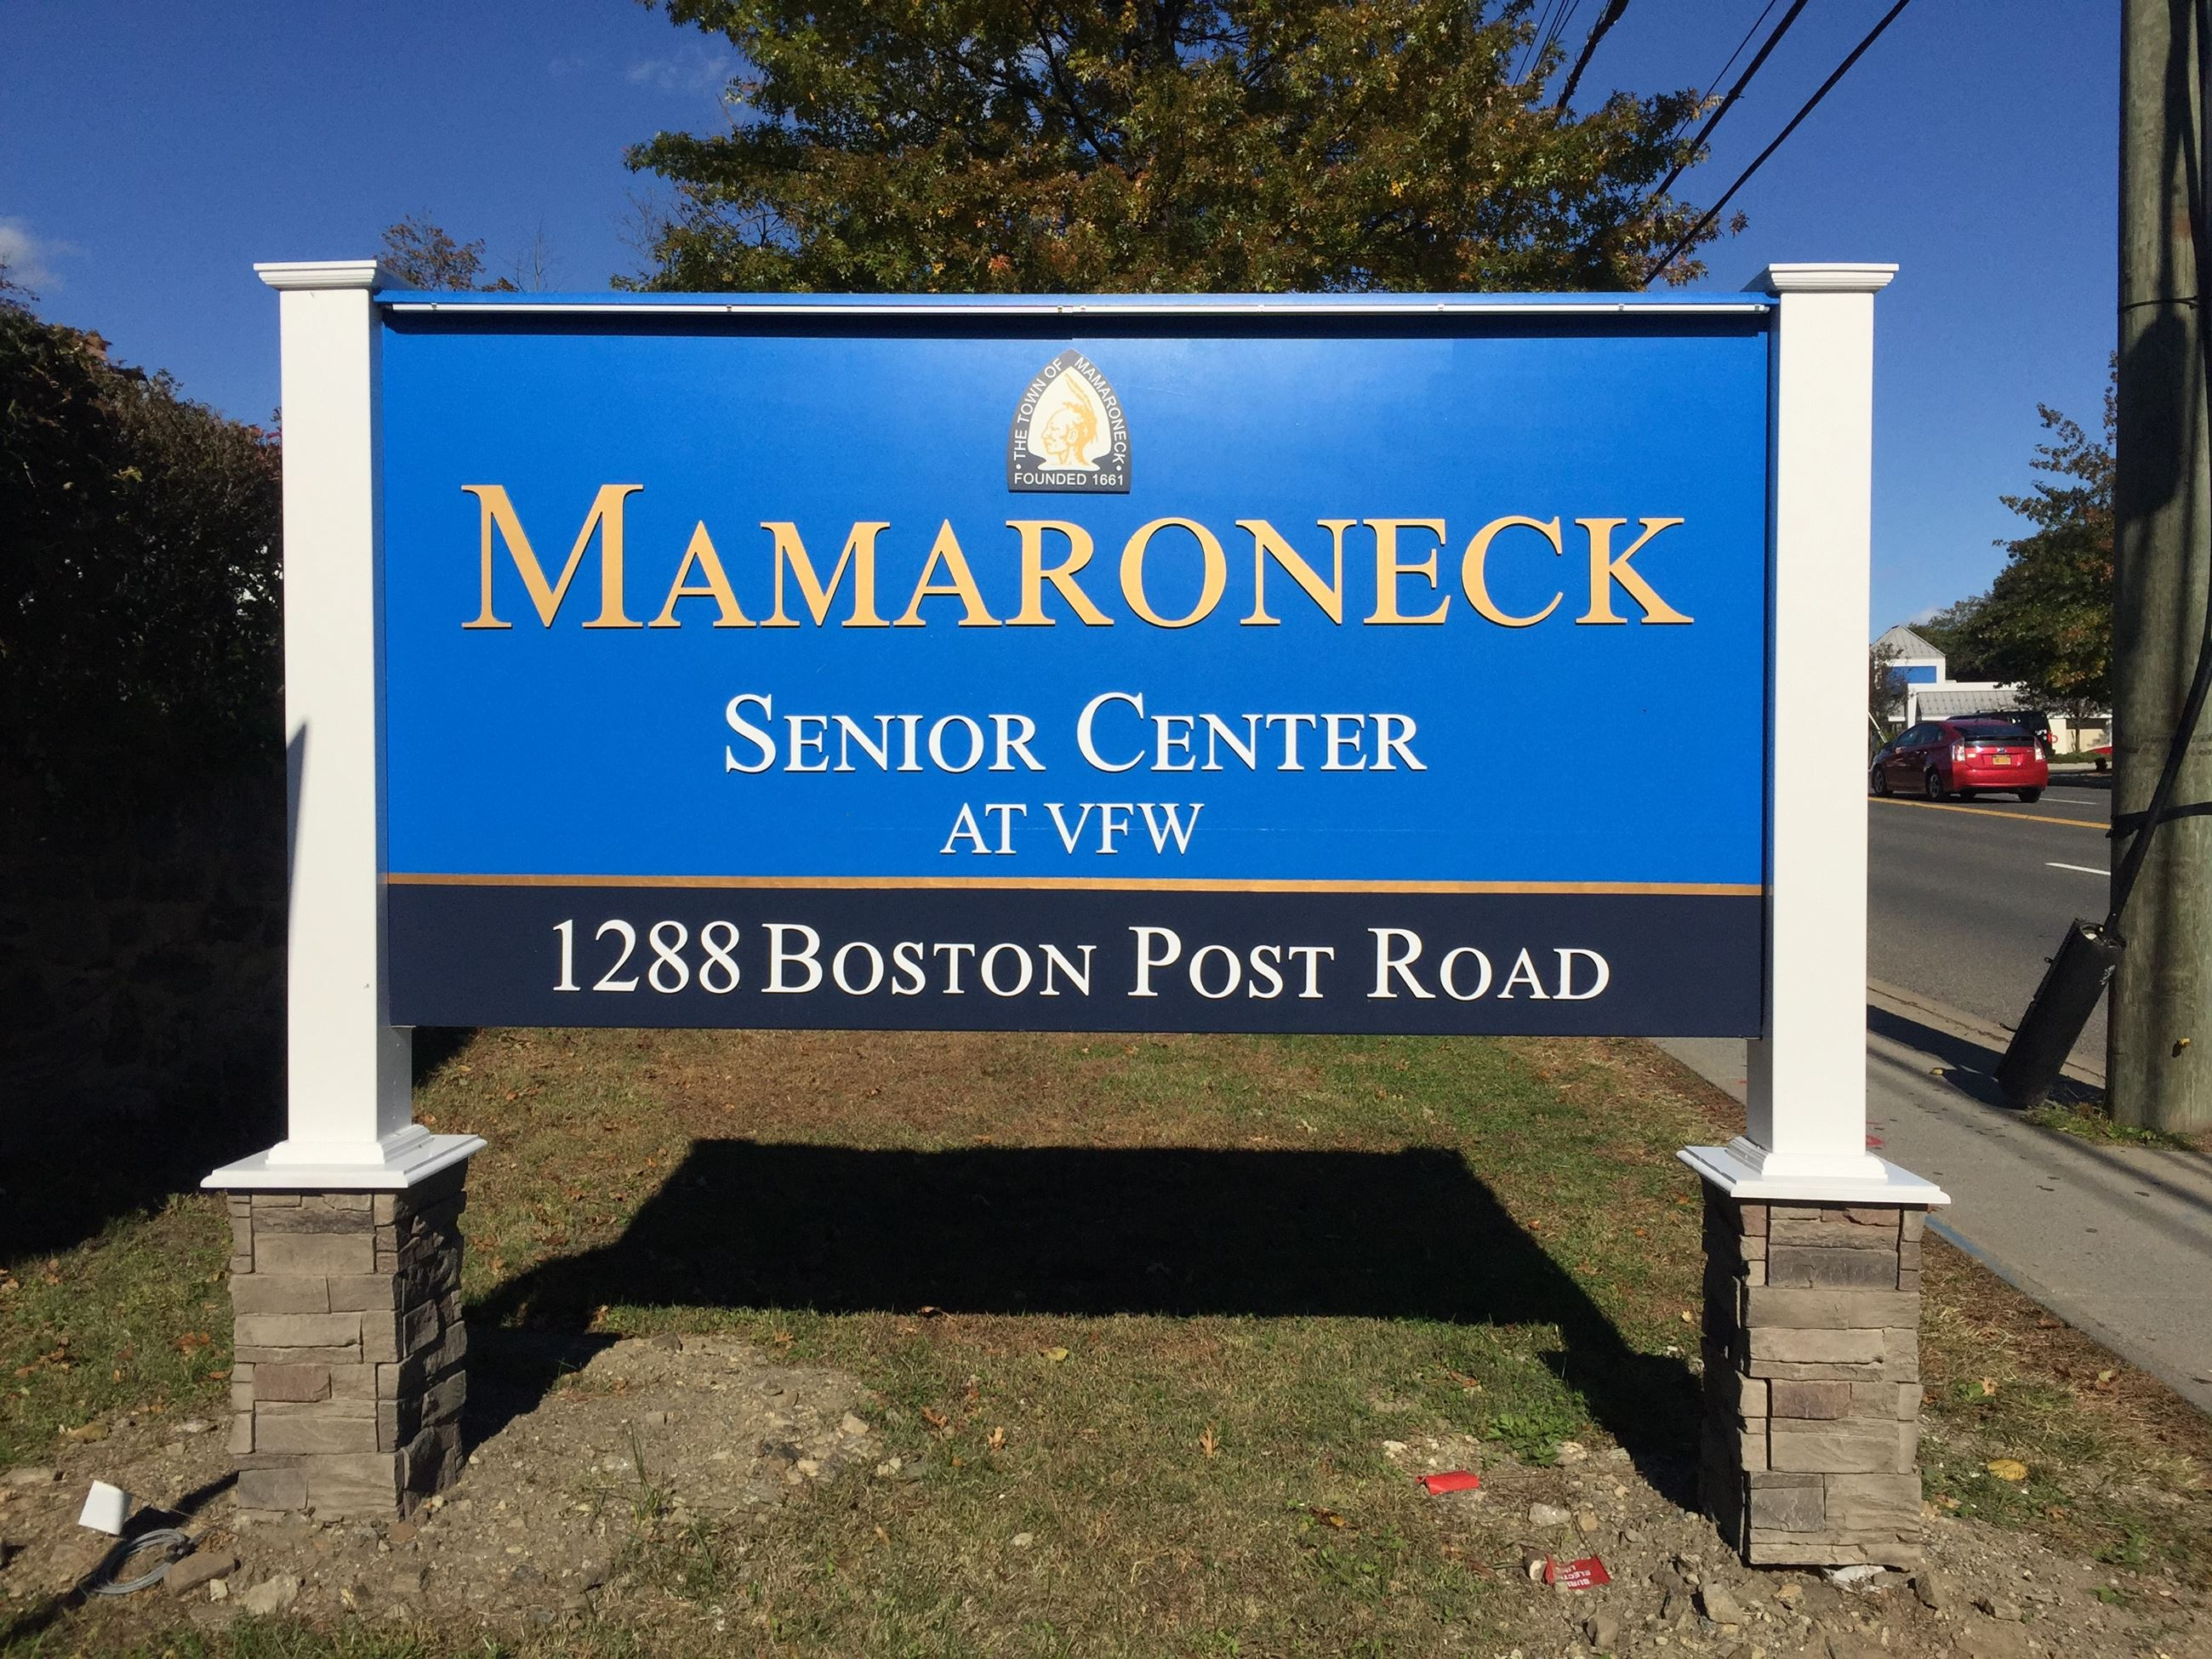 Mamaroneck Senior Center at VFW